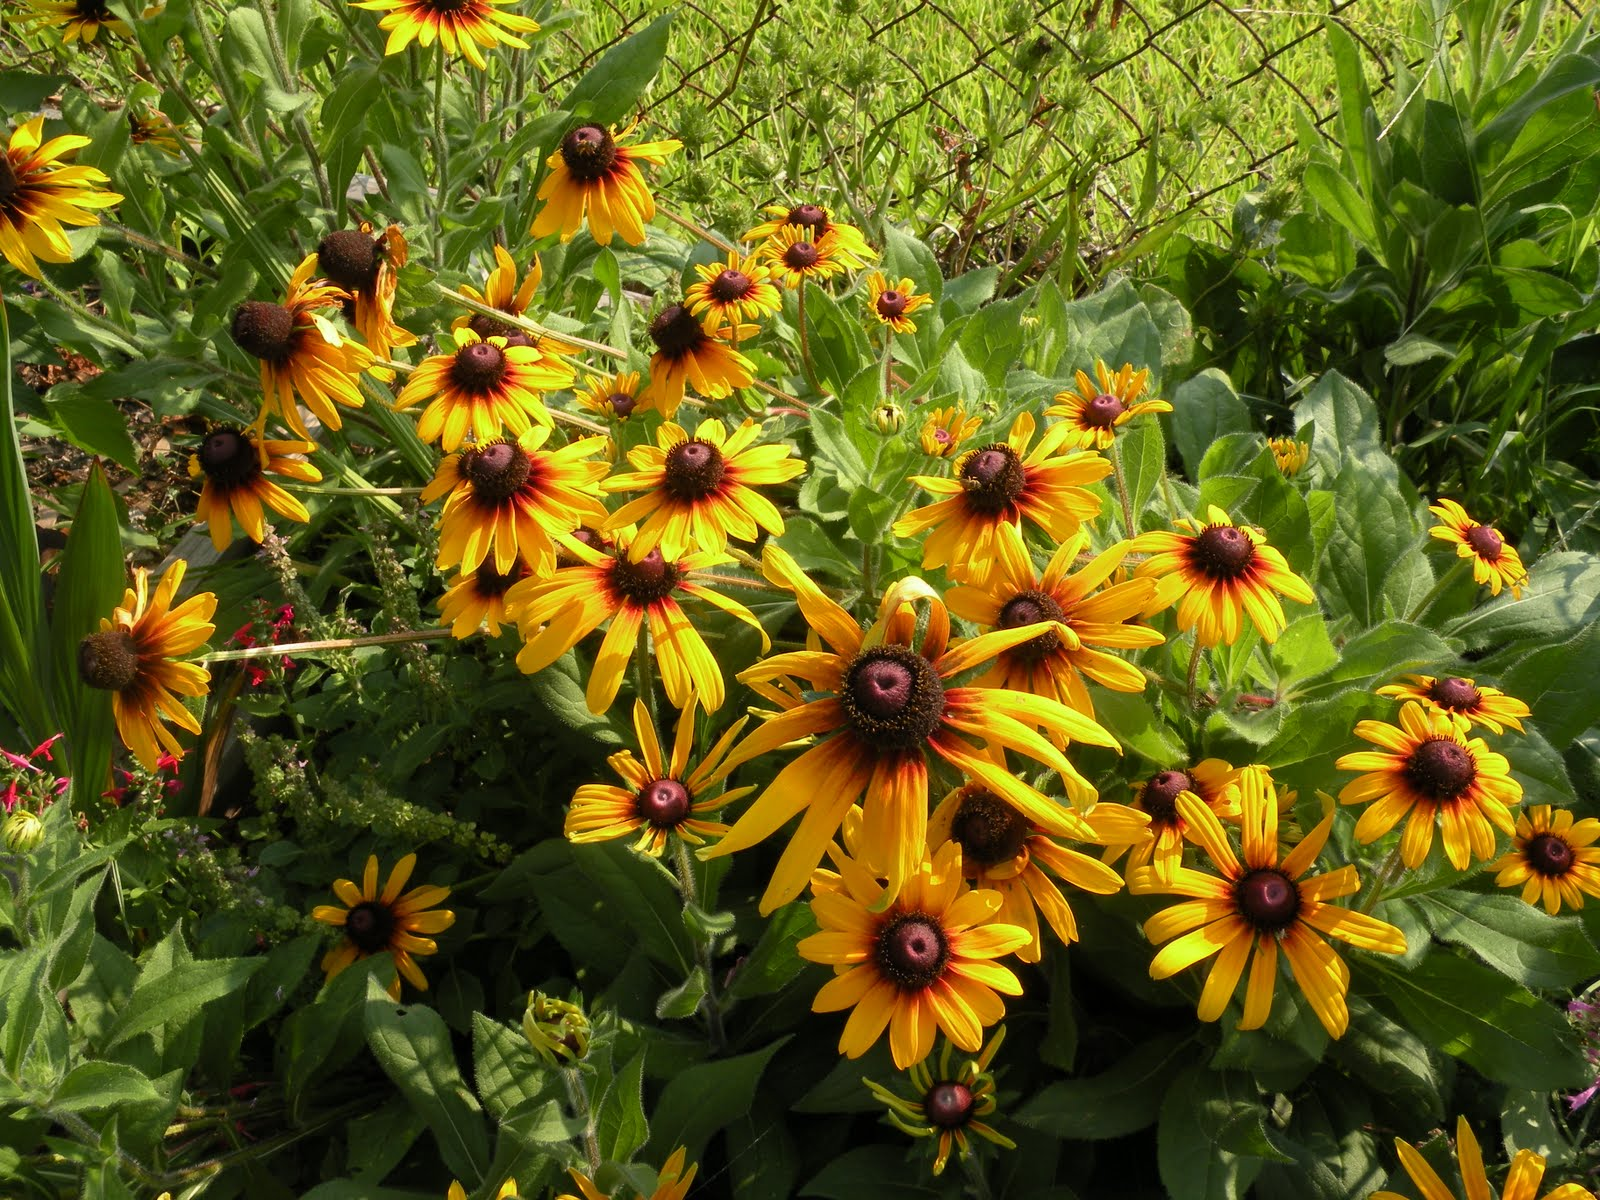 Black eyed susans blog archives Black eyed susans